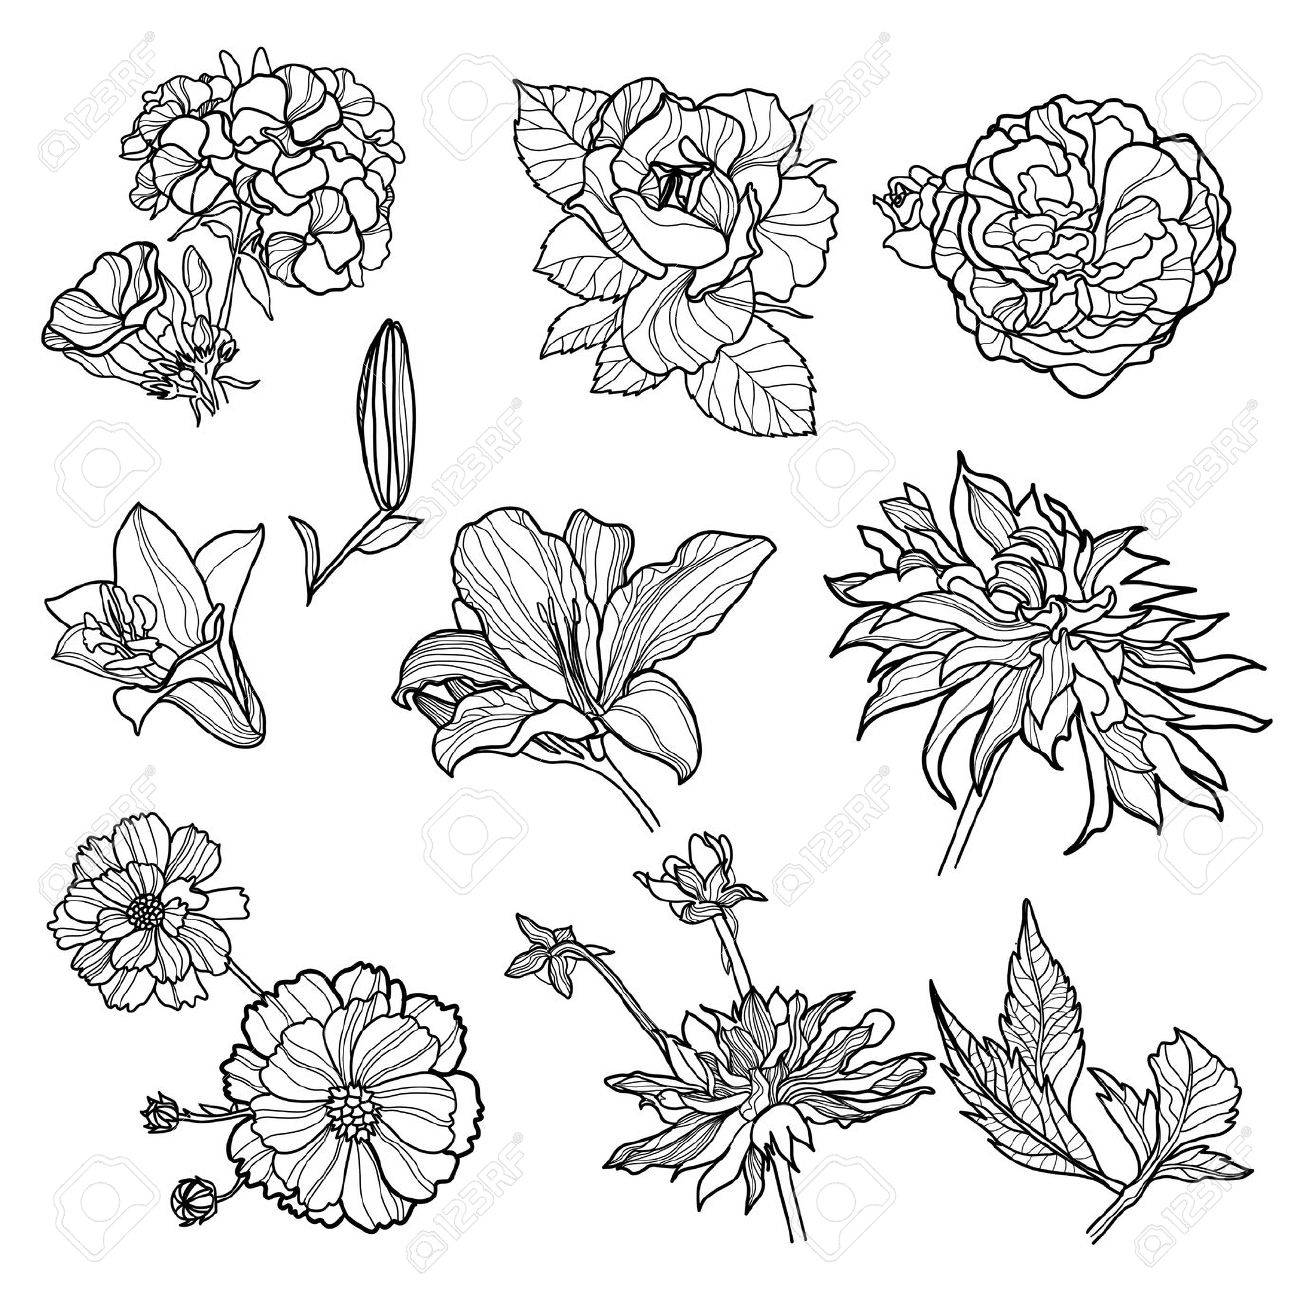 Set Of Black Floral Design Elements Sketches Of Flowers Stock